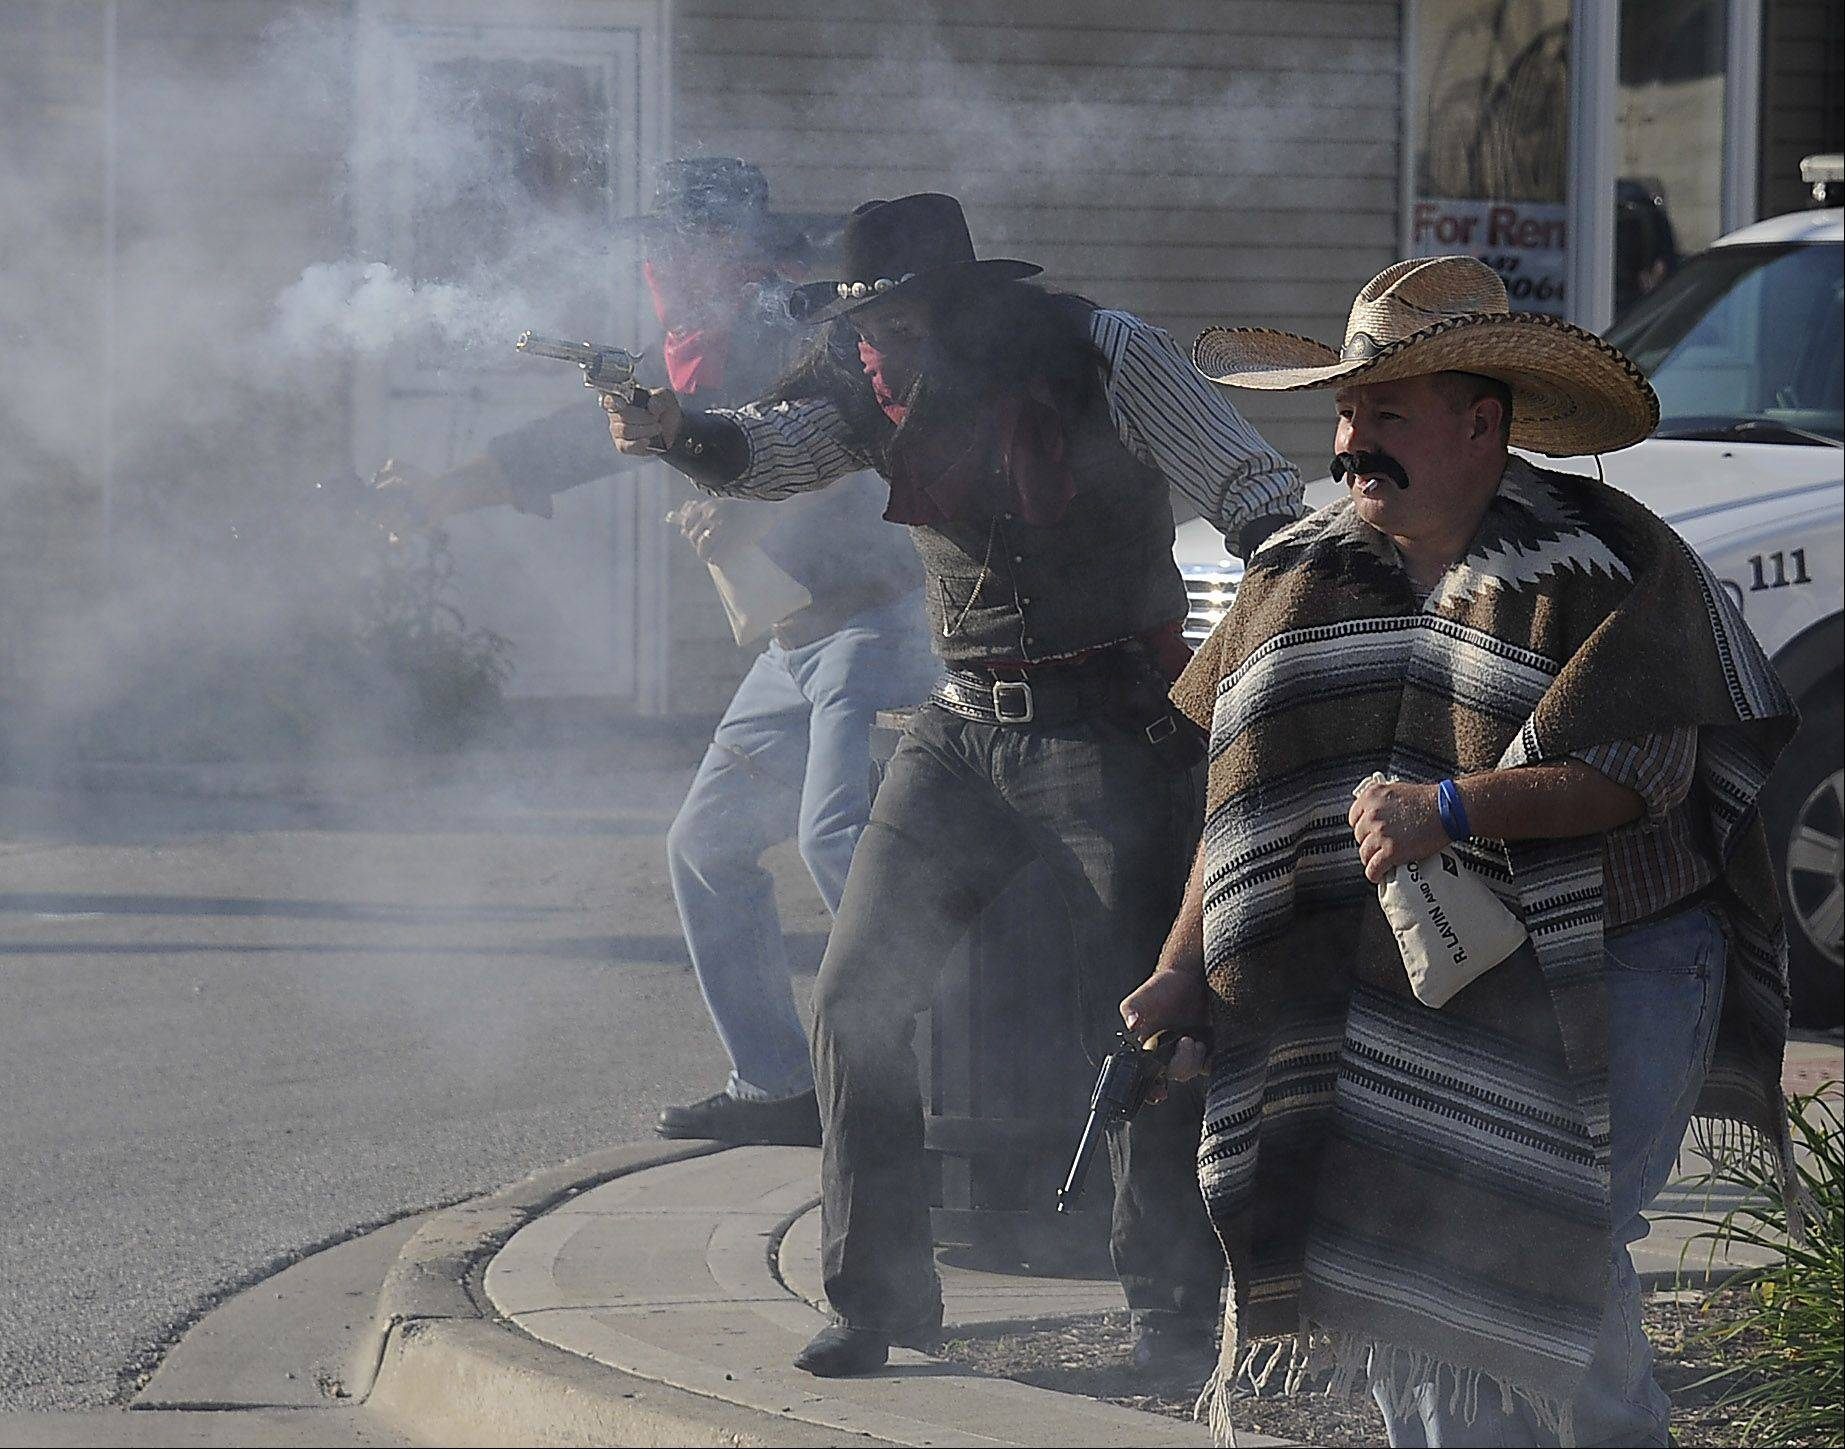 �Bad guys� Shawn Sponenburg of Lake Geneva, Wis., and John Alvarez of Crystal Lake shoot it out with the law Thursday evening on Main Street to promote the Wauconda rodeo this weekend.